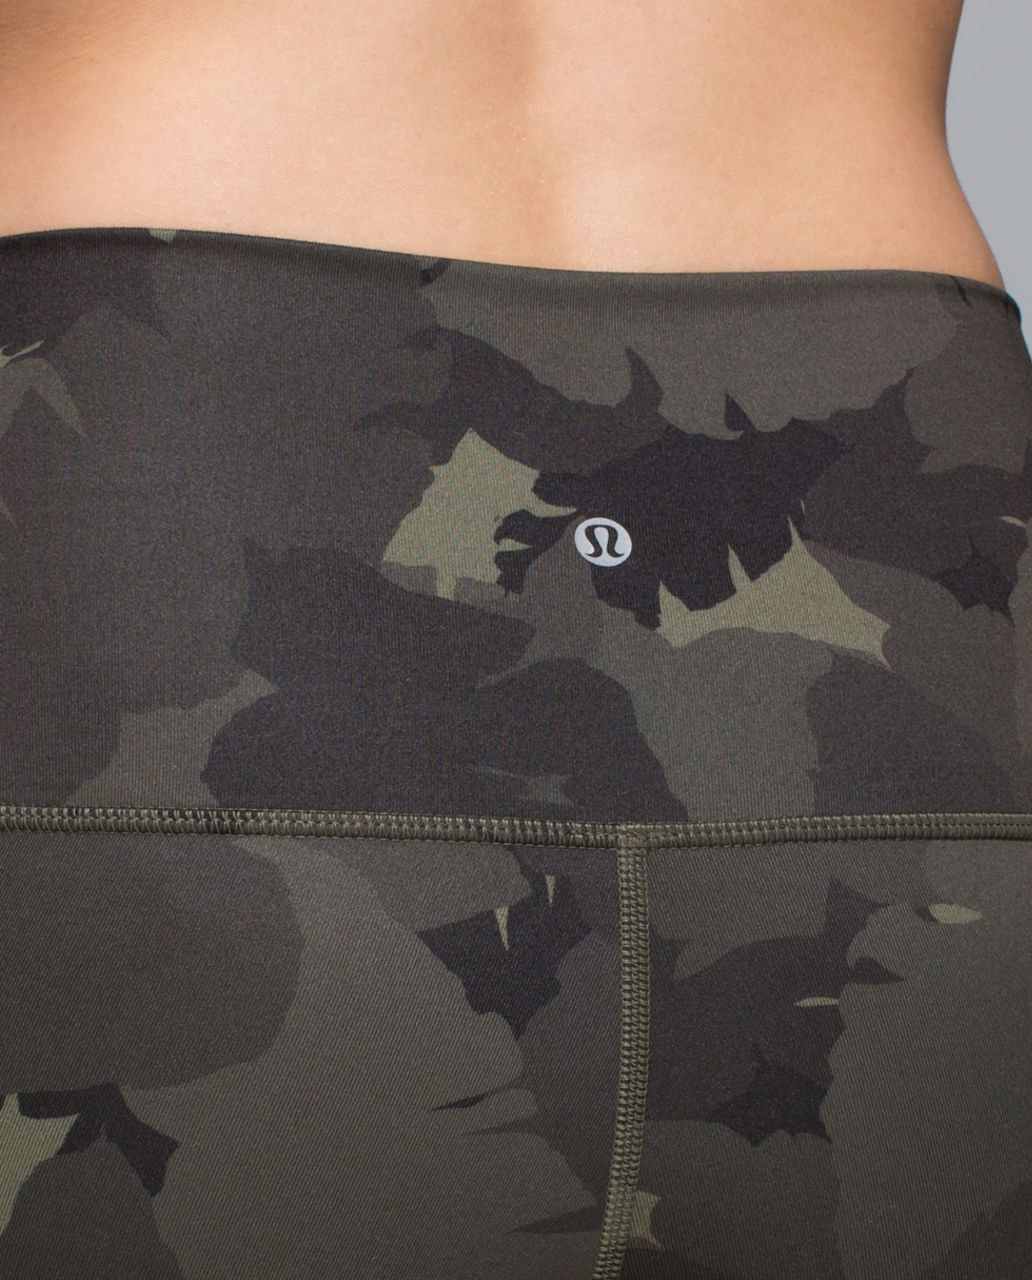 Lululemon Wunder Under Crop II (Roll Down) - Palm Party Fatigue Green Black